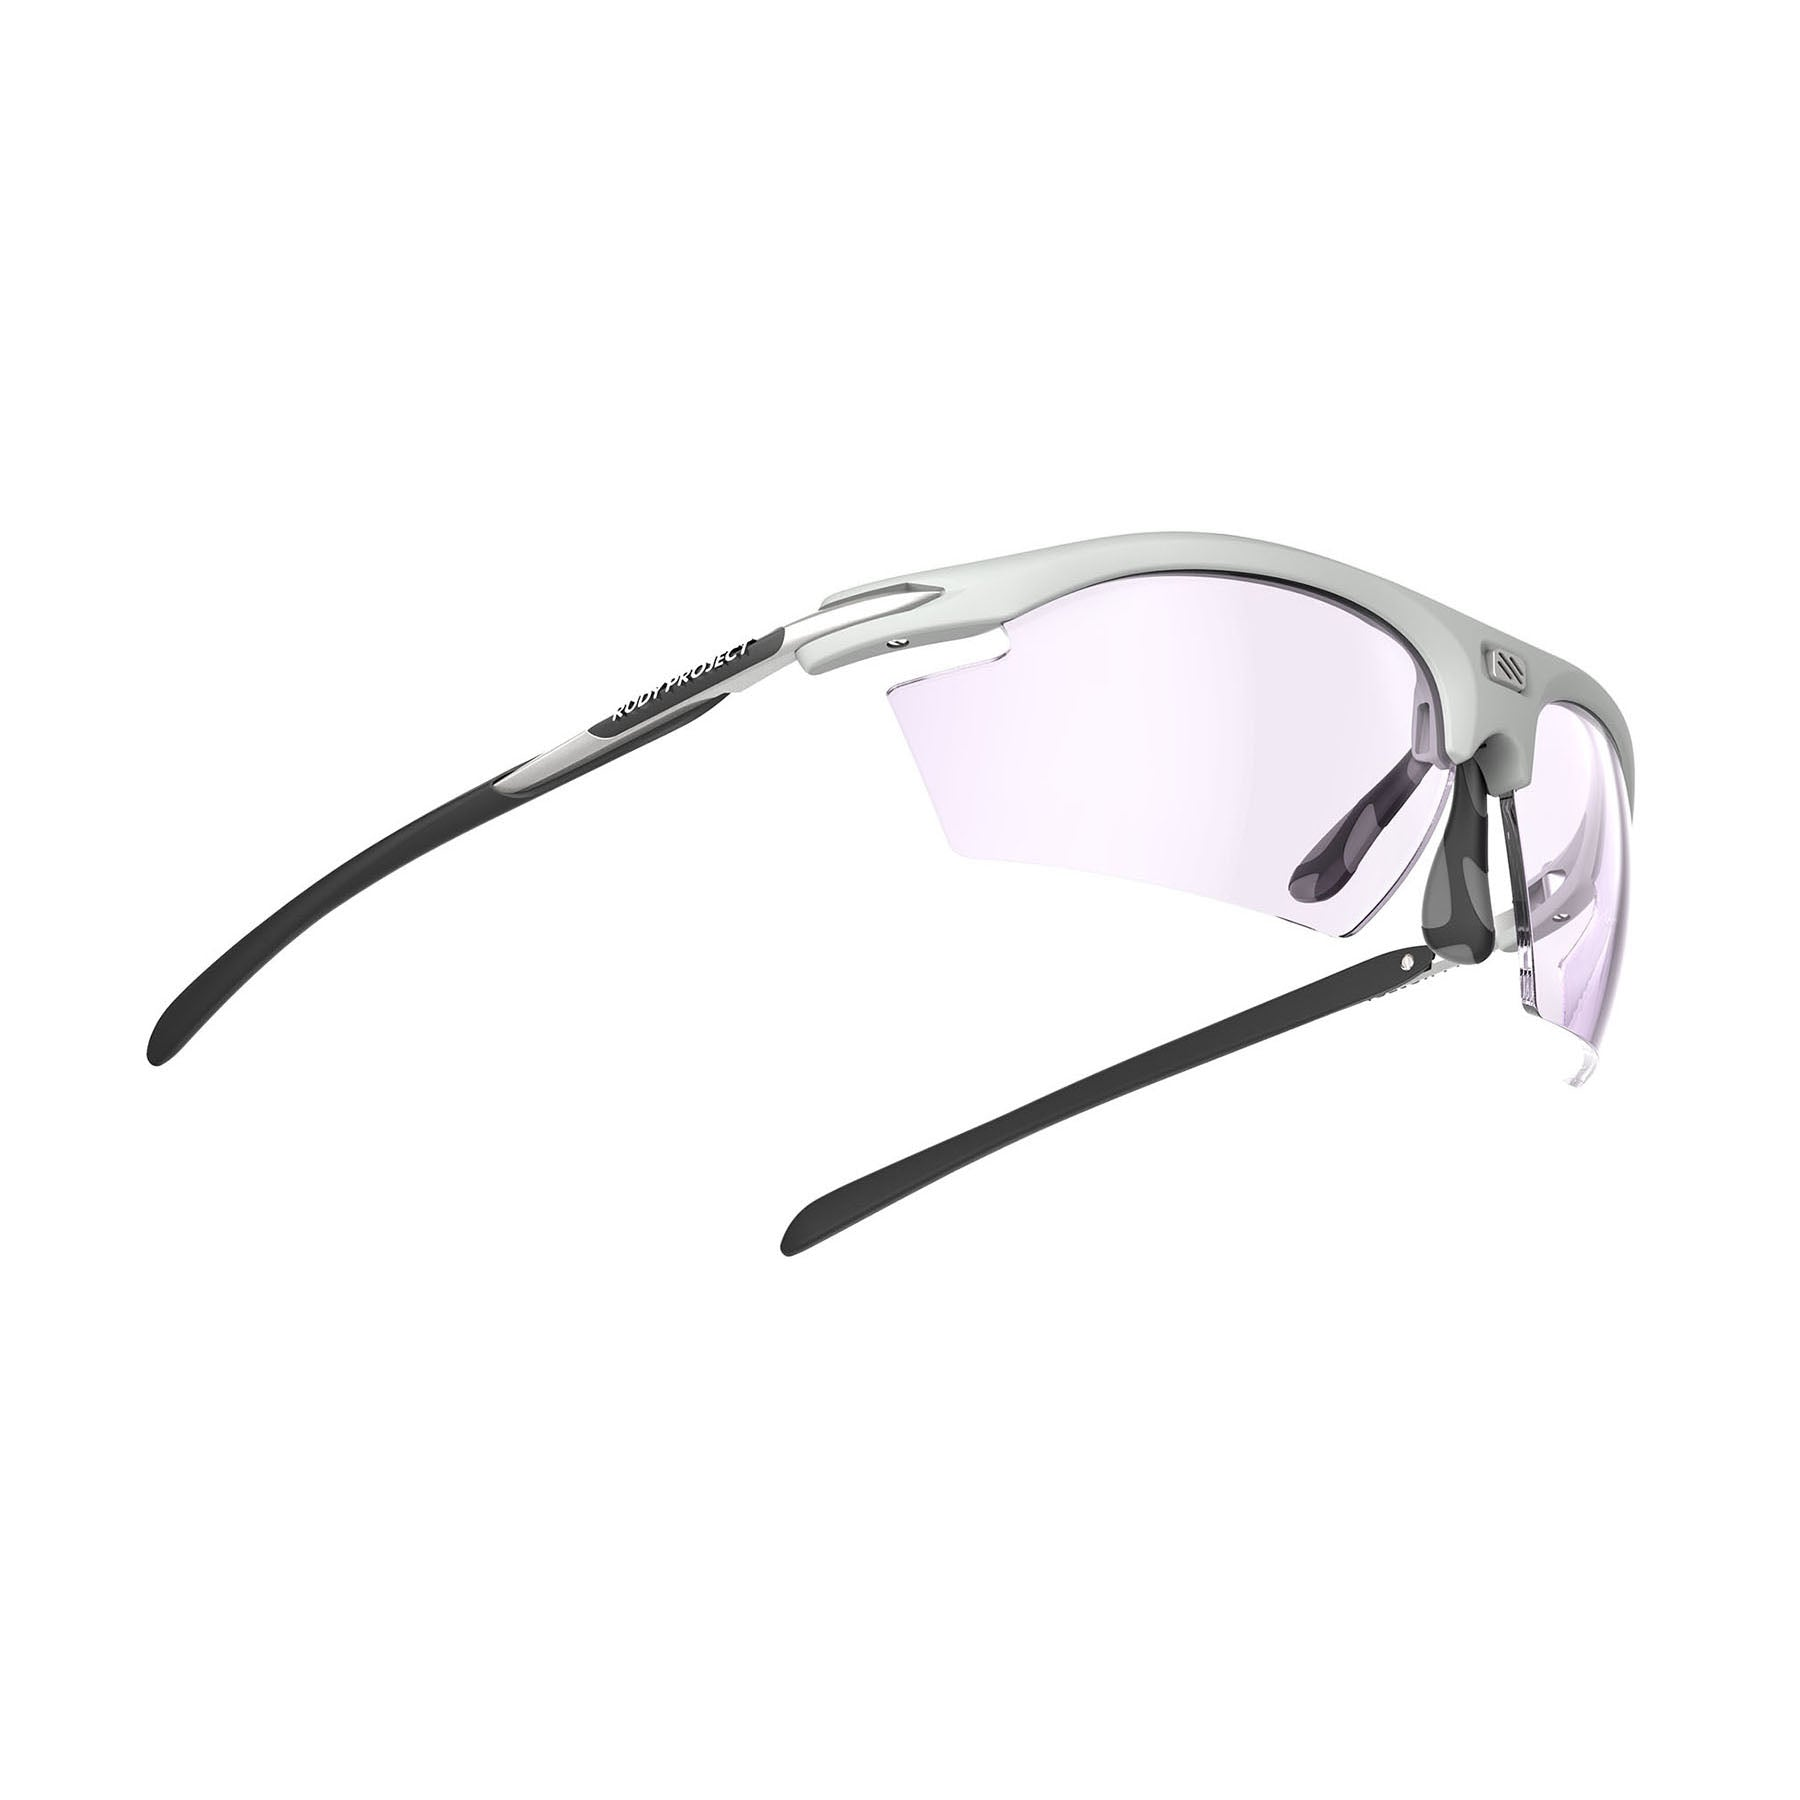 Rudy Project - Rydon Running - frame color: Light Grey - lens color: ImpactX-2 Photochromic Clear to Laser Purple - photo angle: Bottom Front Angle Variant Hover Image